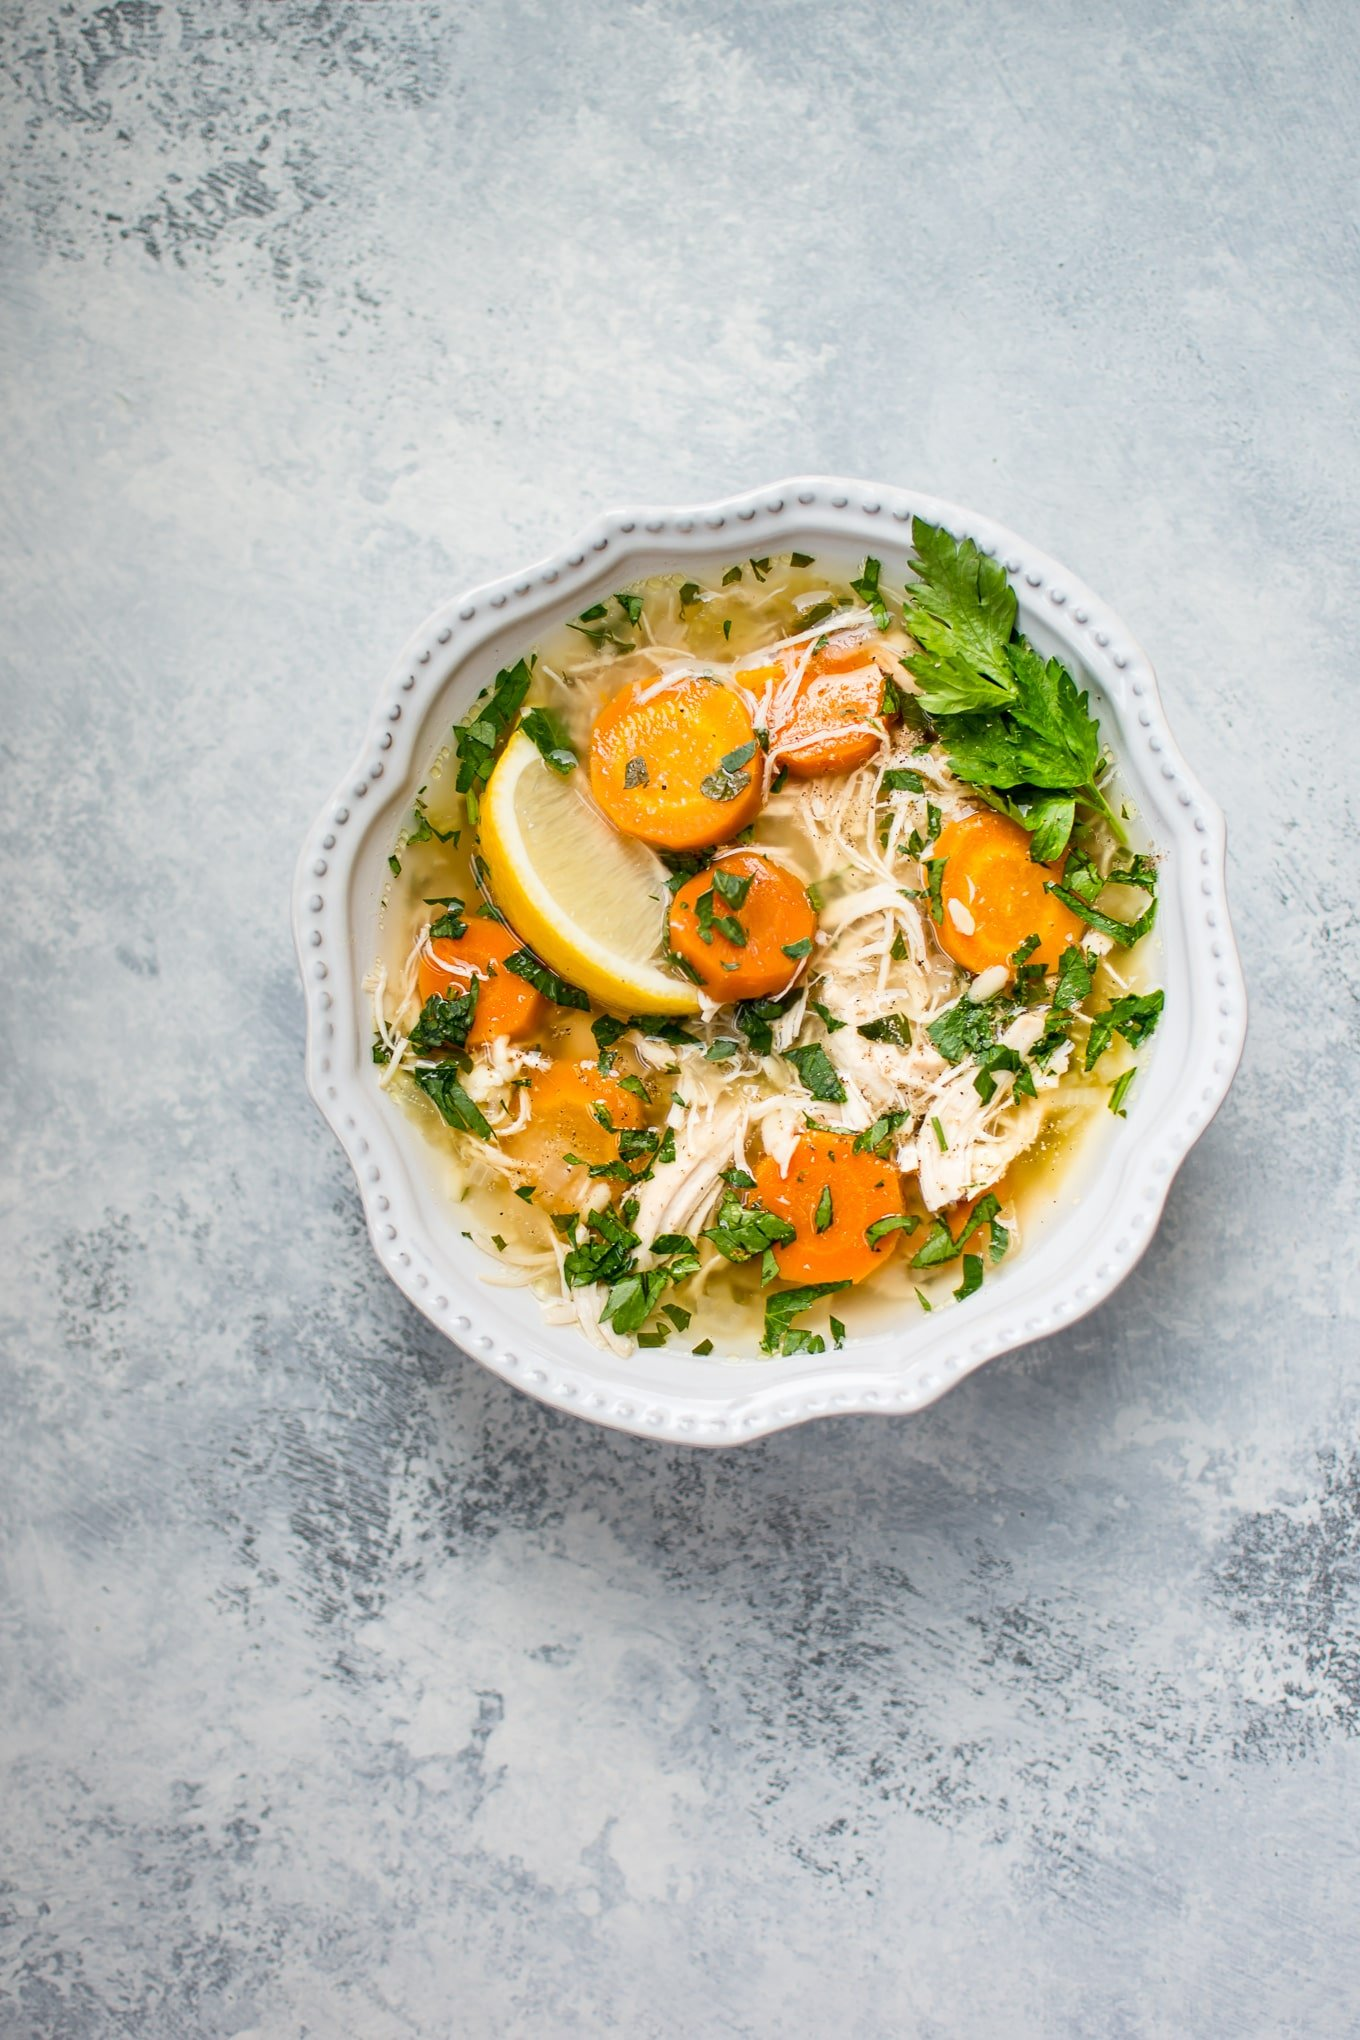 This Crockpot lemon chicken orzo soup recipe is healthy, super easy, andfamily-friendly. Come home to a steaming bowl of deliciousness!